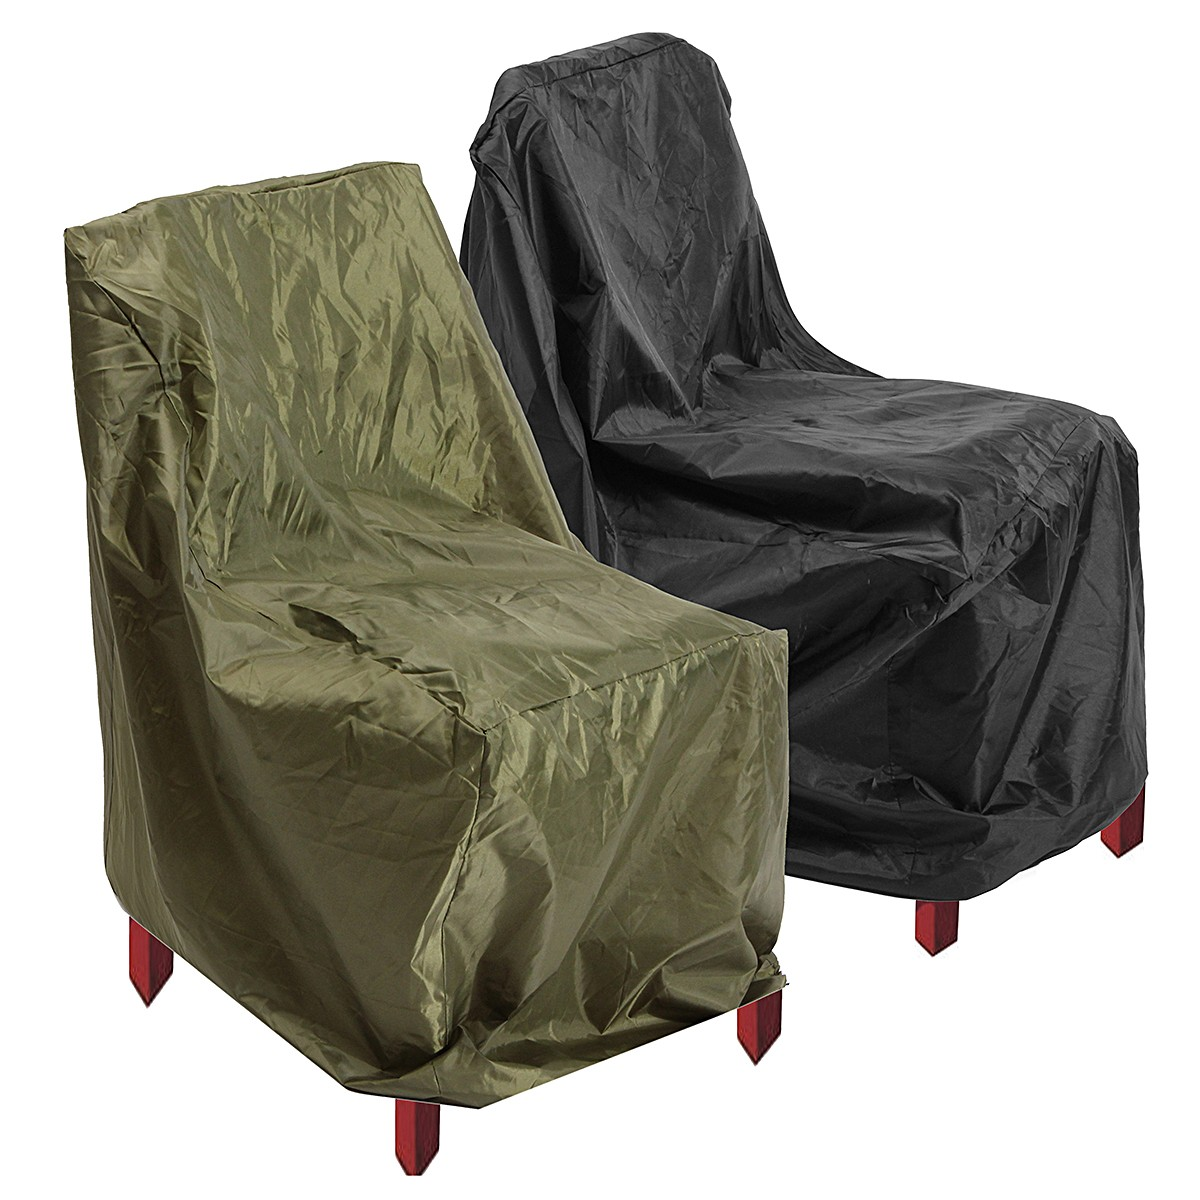 IPRee® 64x64x120cm Waterproof Polyester High Back Chair Cover Outdoor Patio Furniture Protection